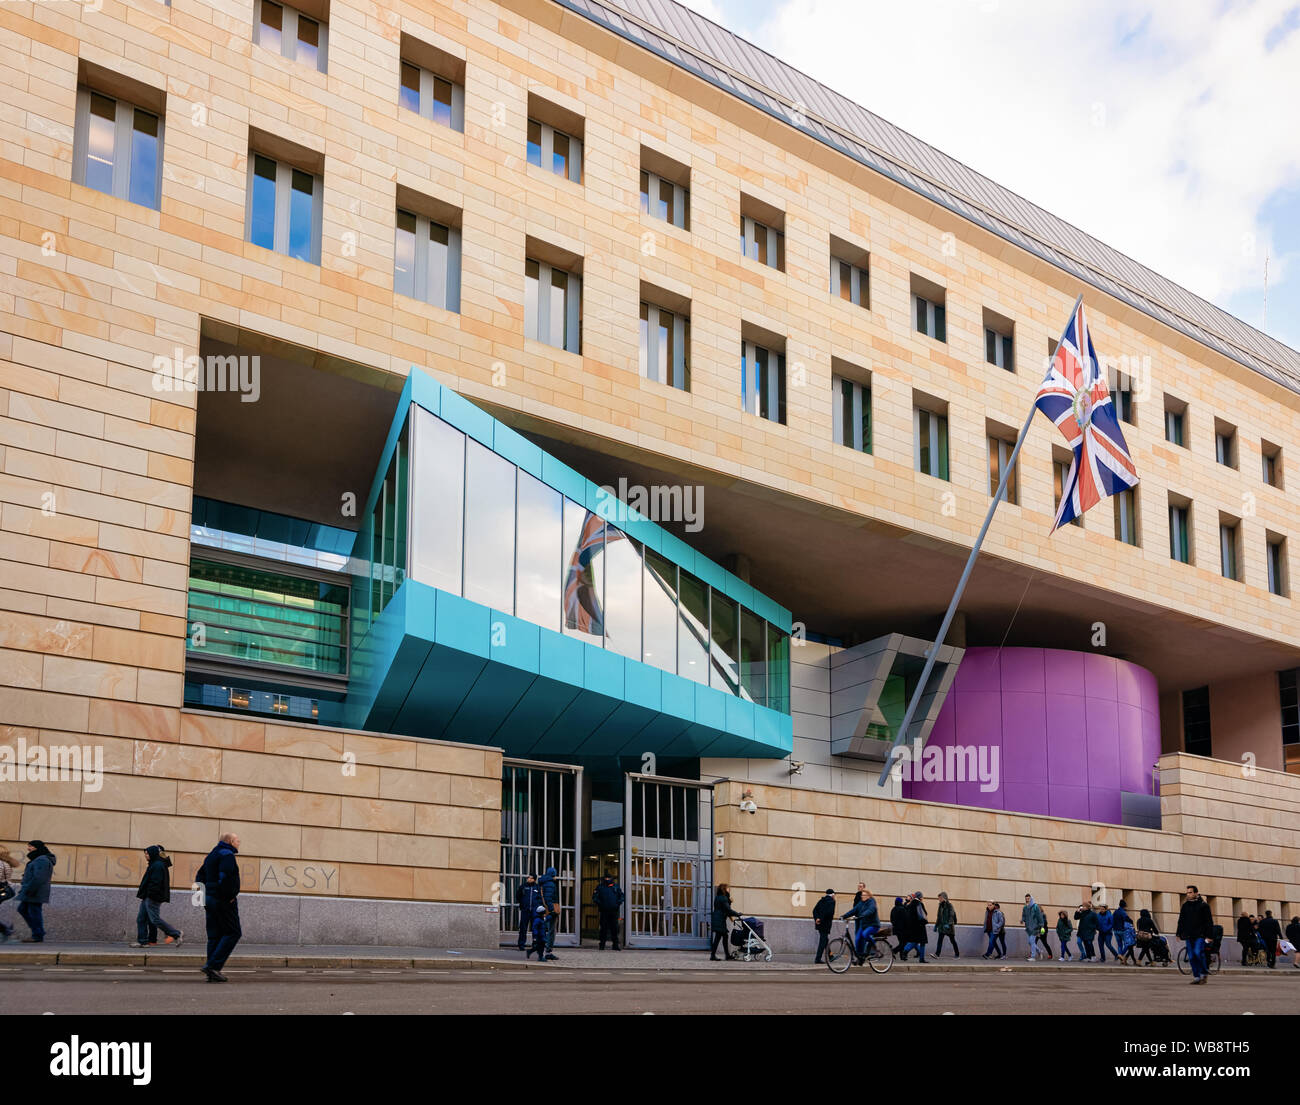 The British Embassy Building High Resolution Stock Photography And Images Alamy